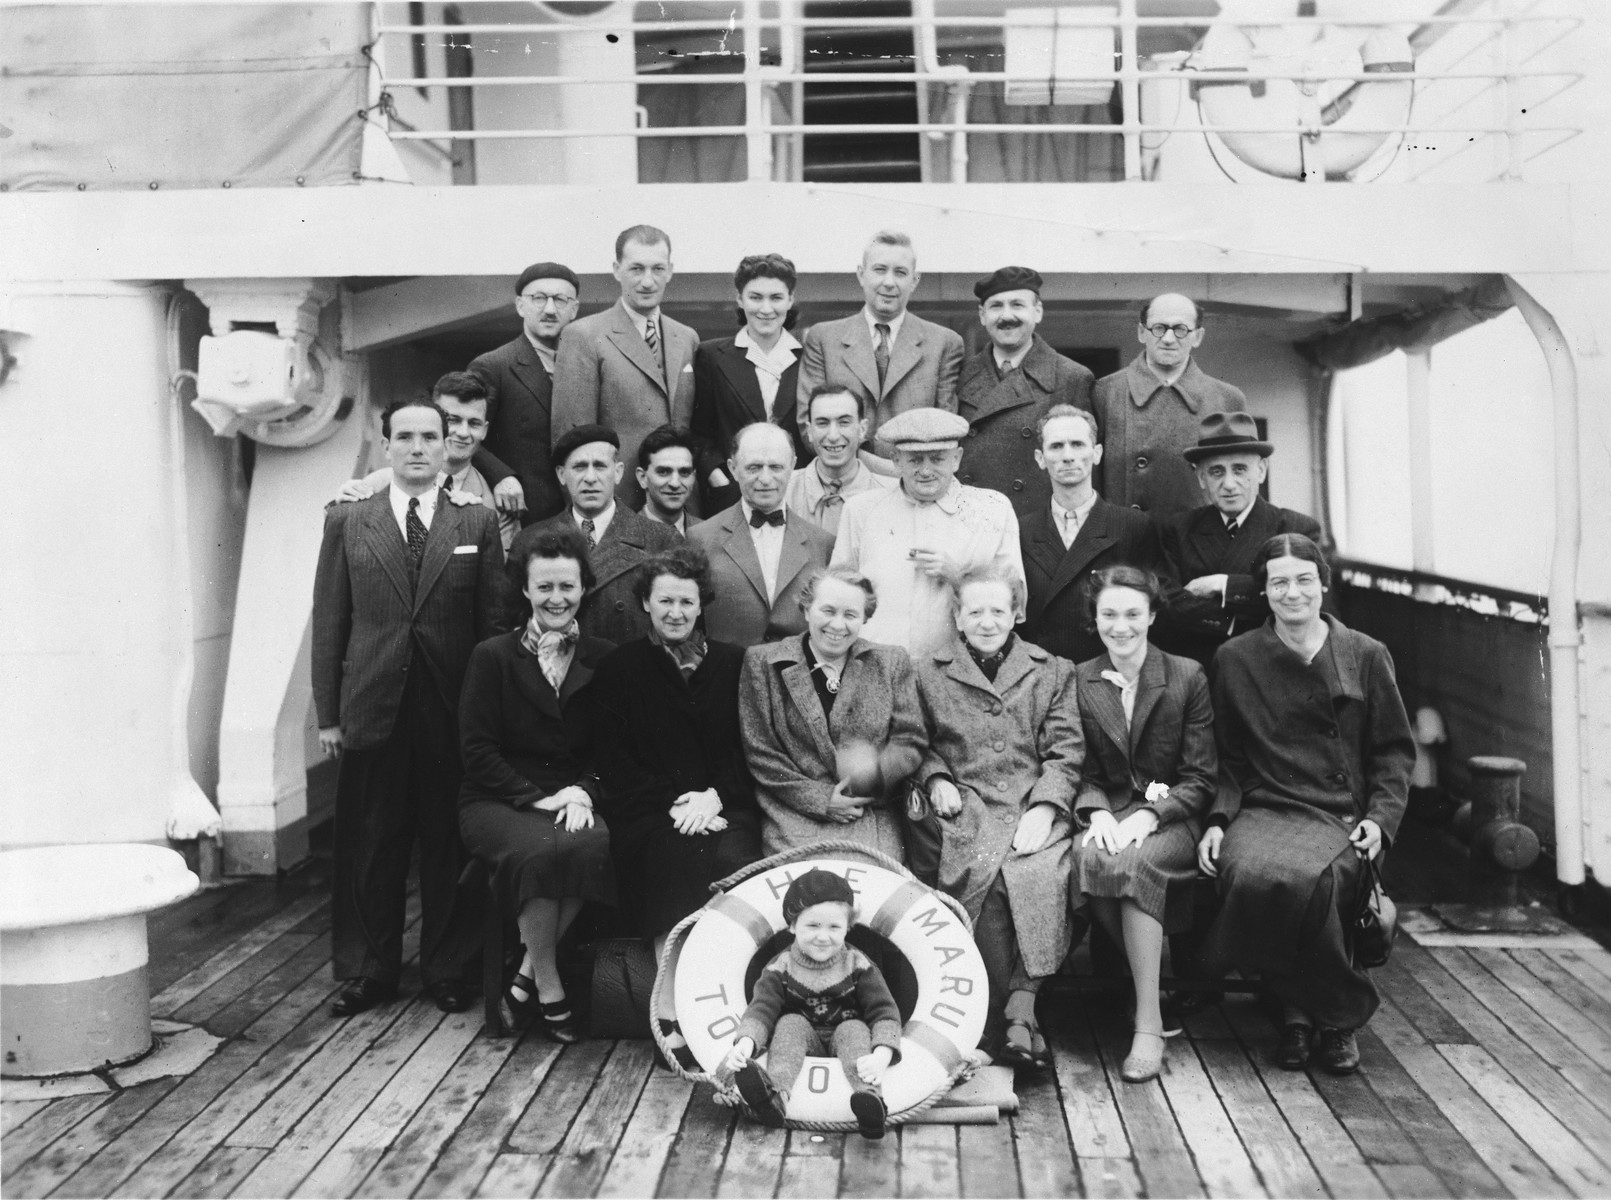 Group portrait of Jewish refugees on the deck of a Japanese ship while en route to the United States.  Among those pictured is Susan Berman (top row, center).  Some of these refugees reached Japan with the aid of Japanese transit visas issued by Chiune Sugihara, Consul for Japan in Kaunas, Lithuania in 1940.